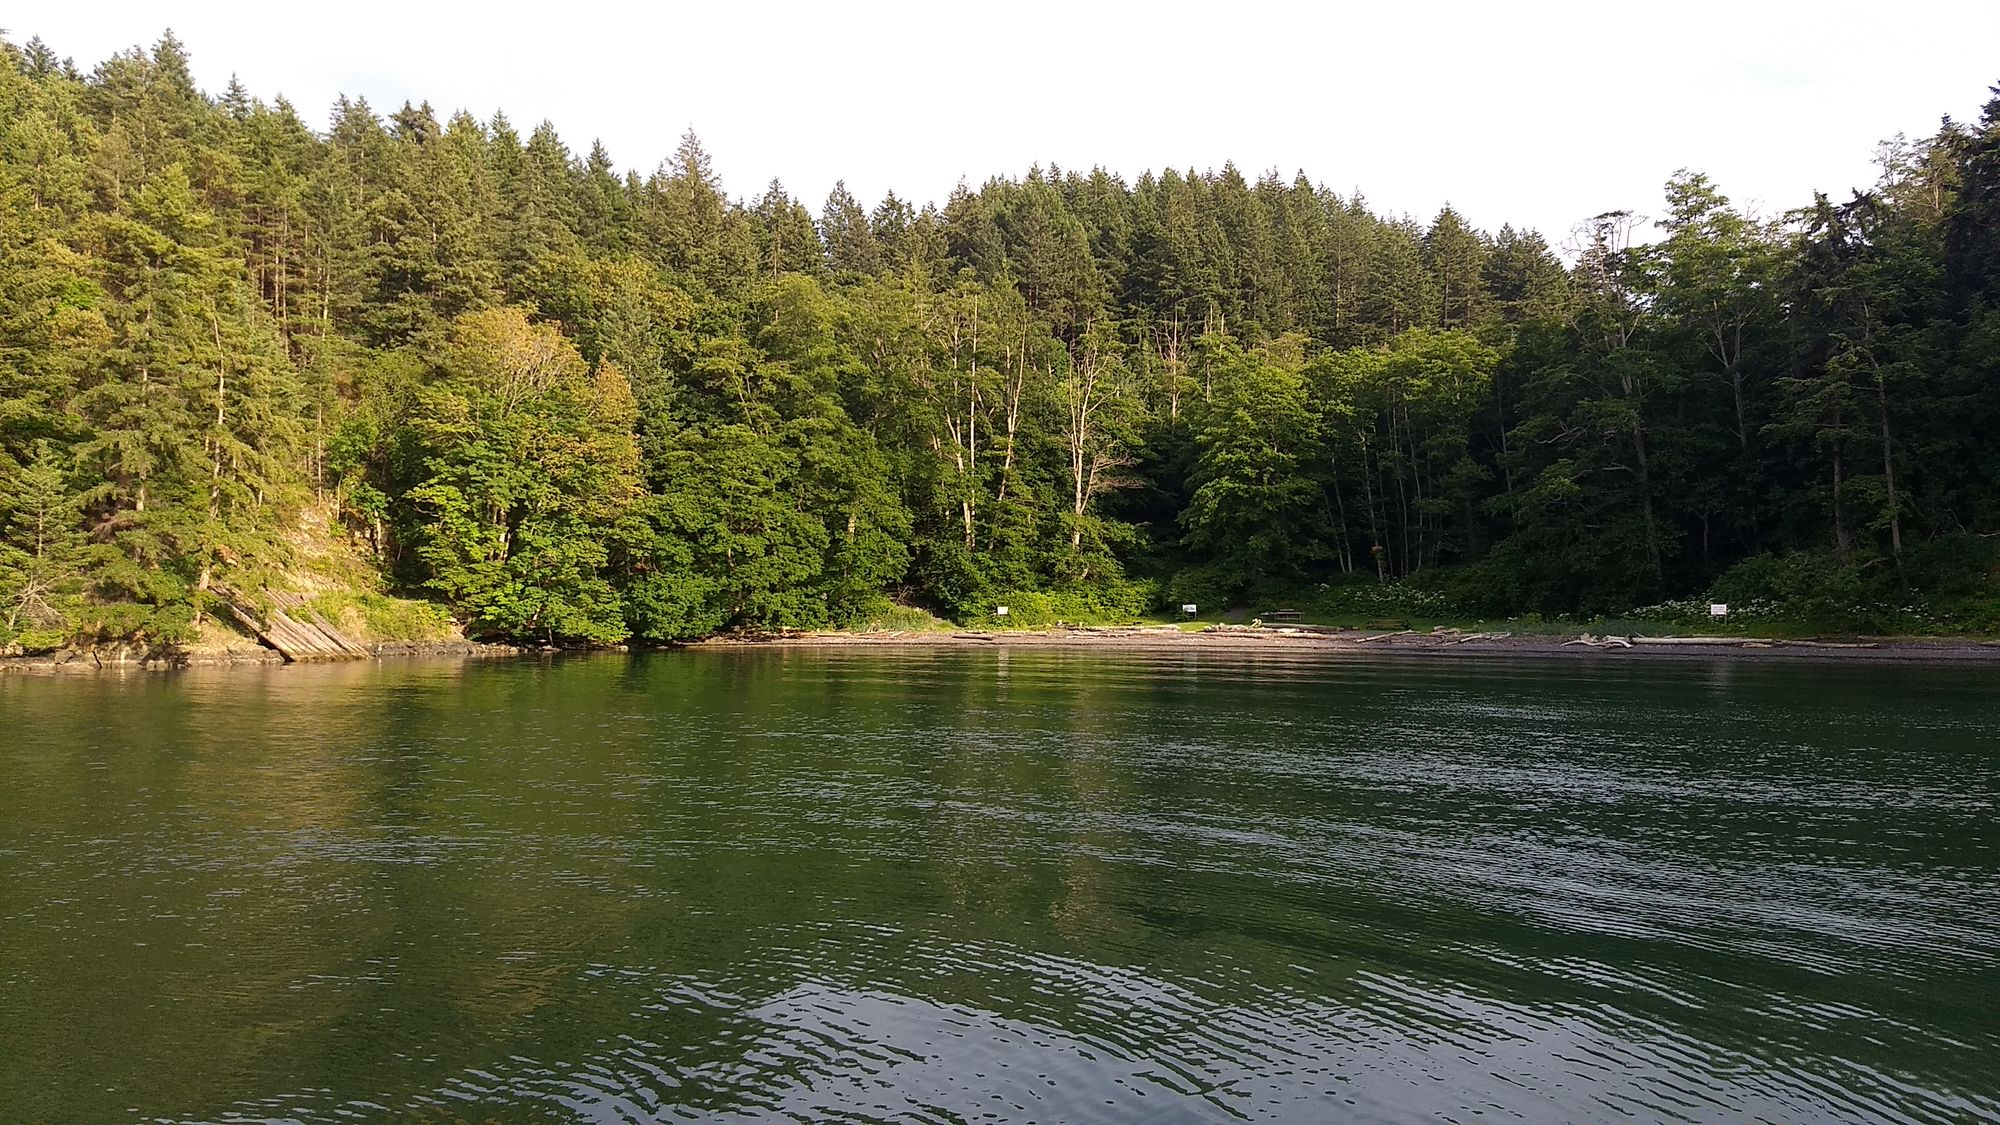 A small, calm bay with a very densely forested shore.